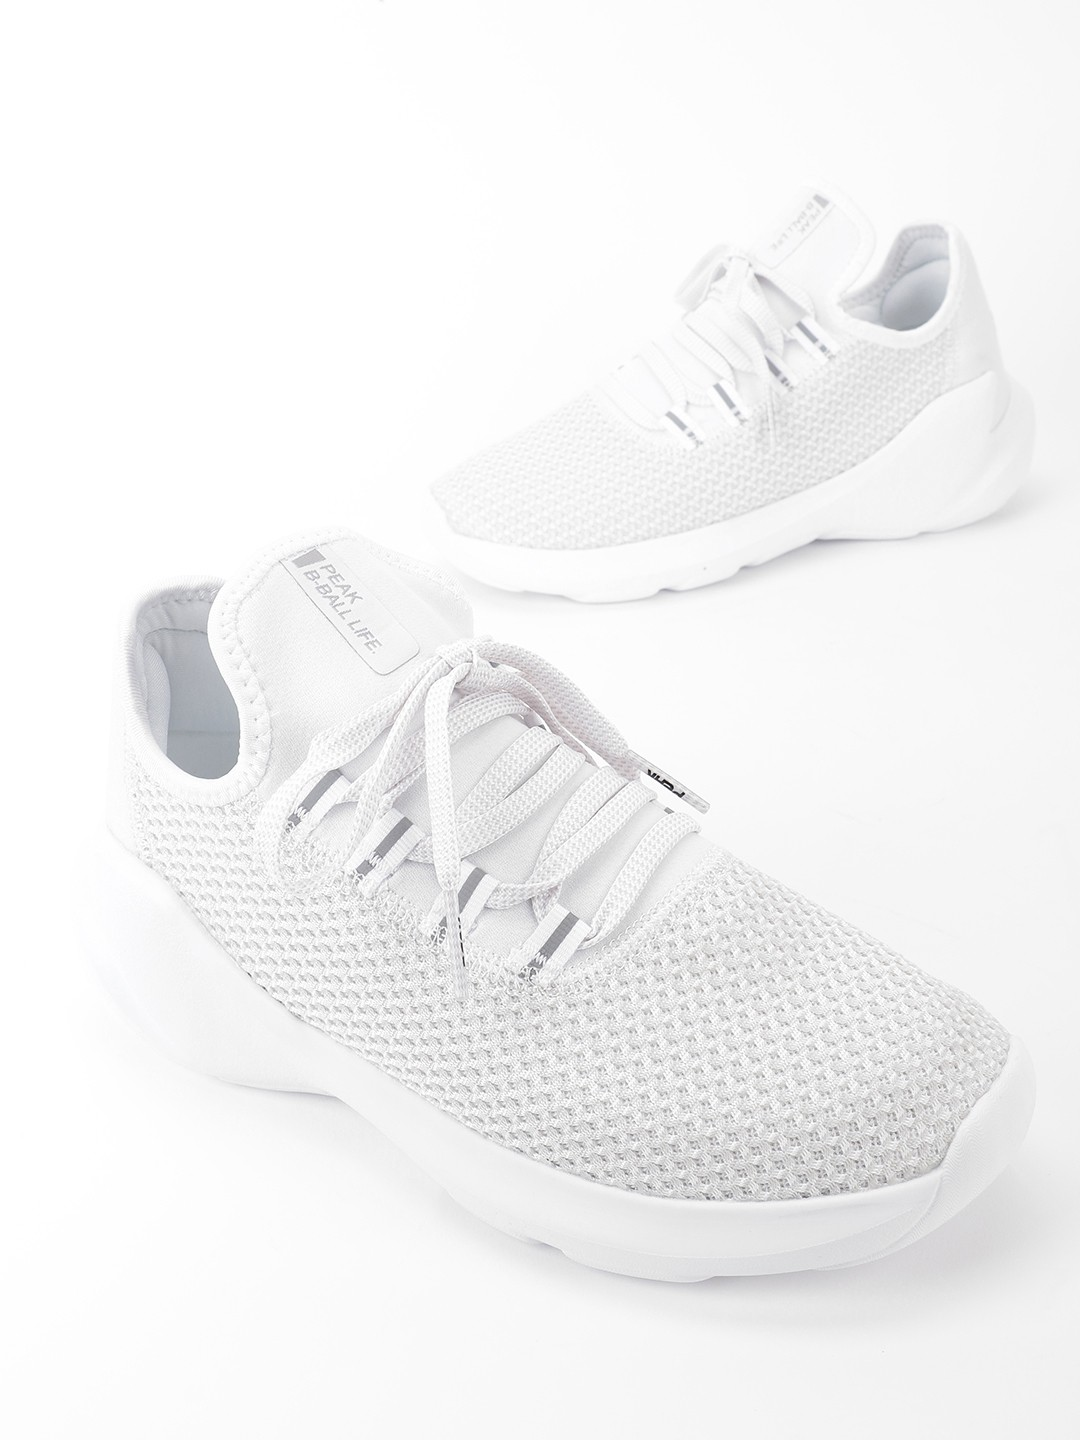 Peak White Knitted Chunky Sole Basketball Shoes 1